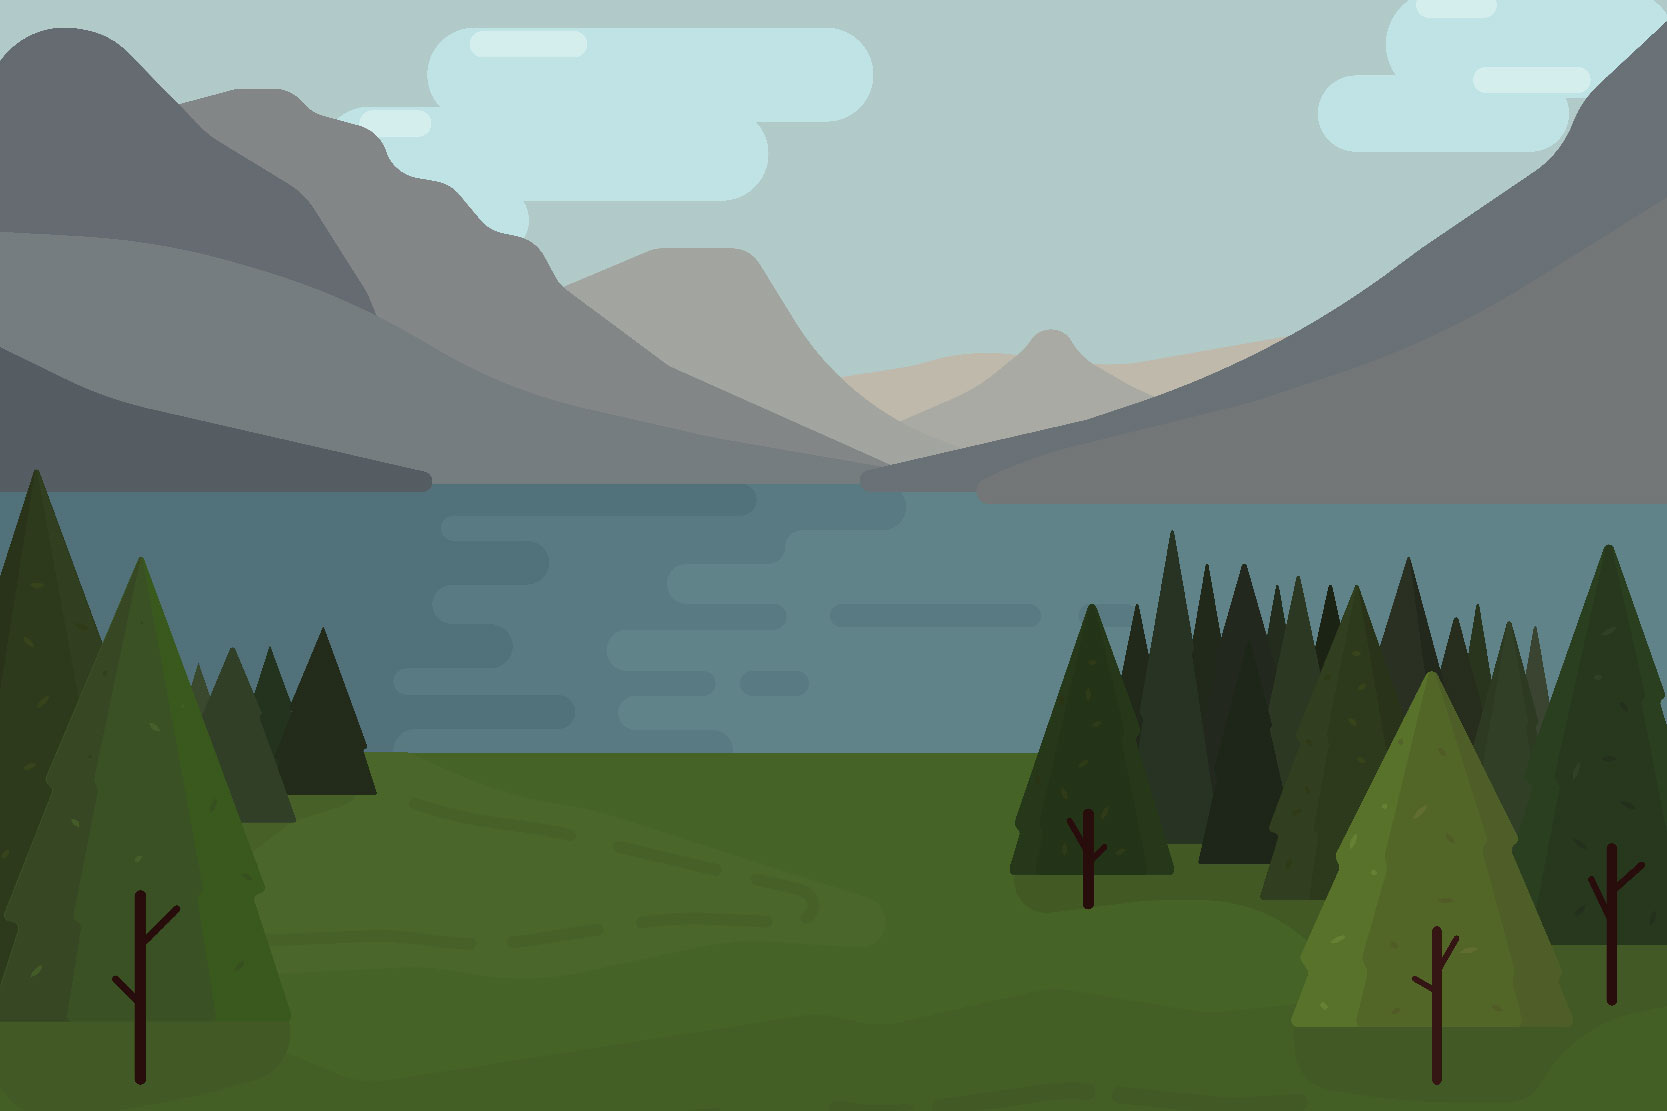 Mountain landscapes - Vector illustrations example image 5